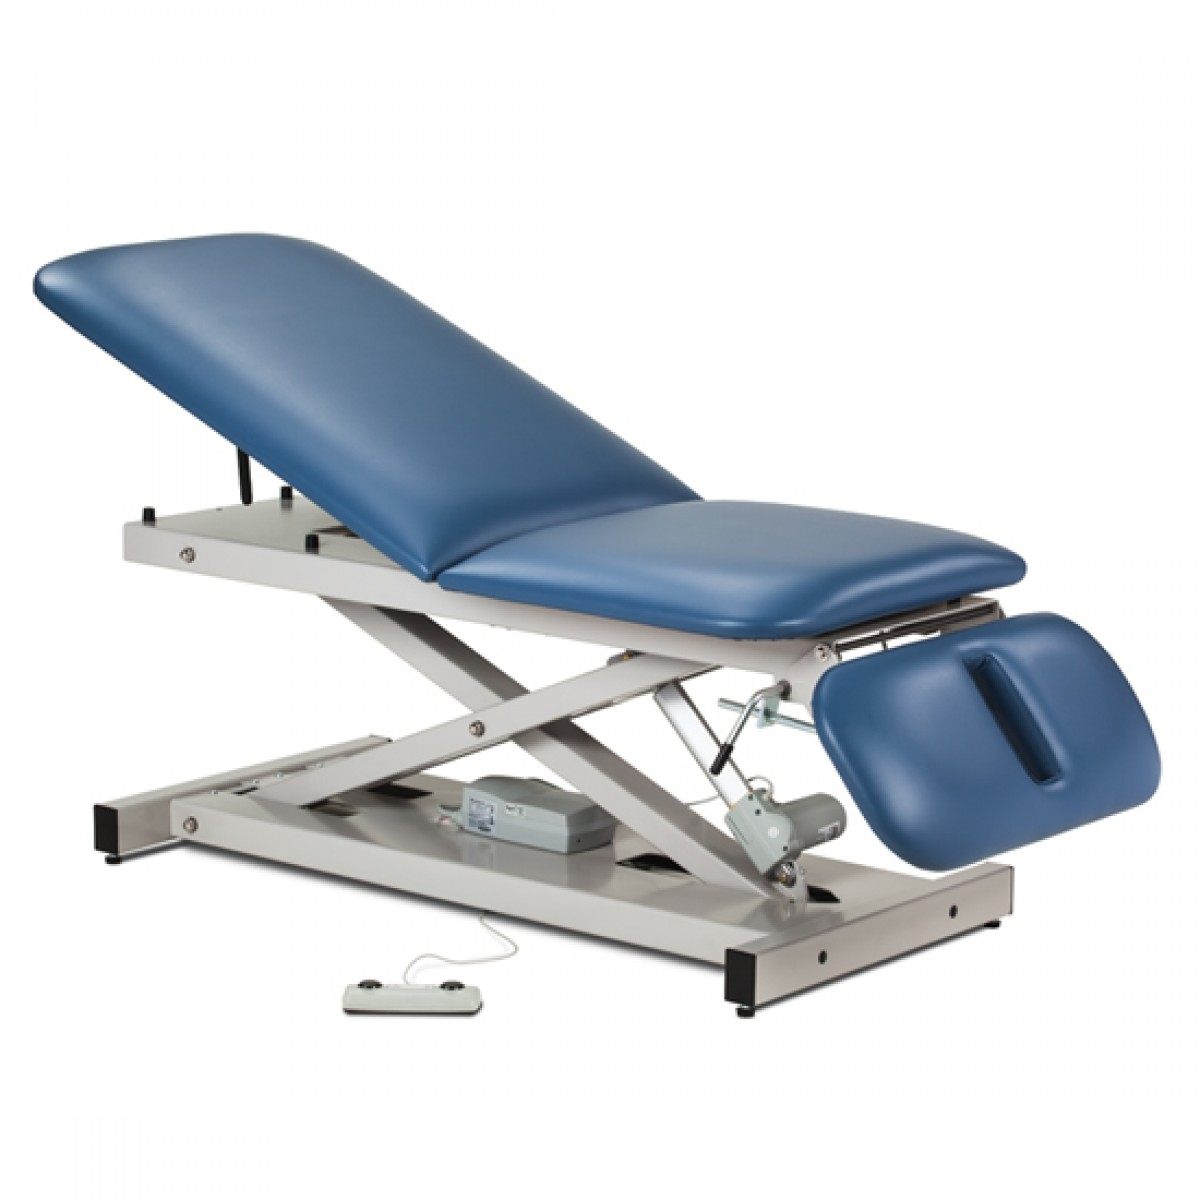 80330 Open Base Power Table Power Exam Table Clinton